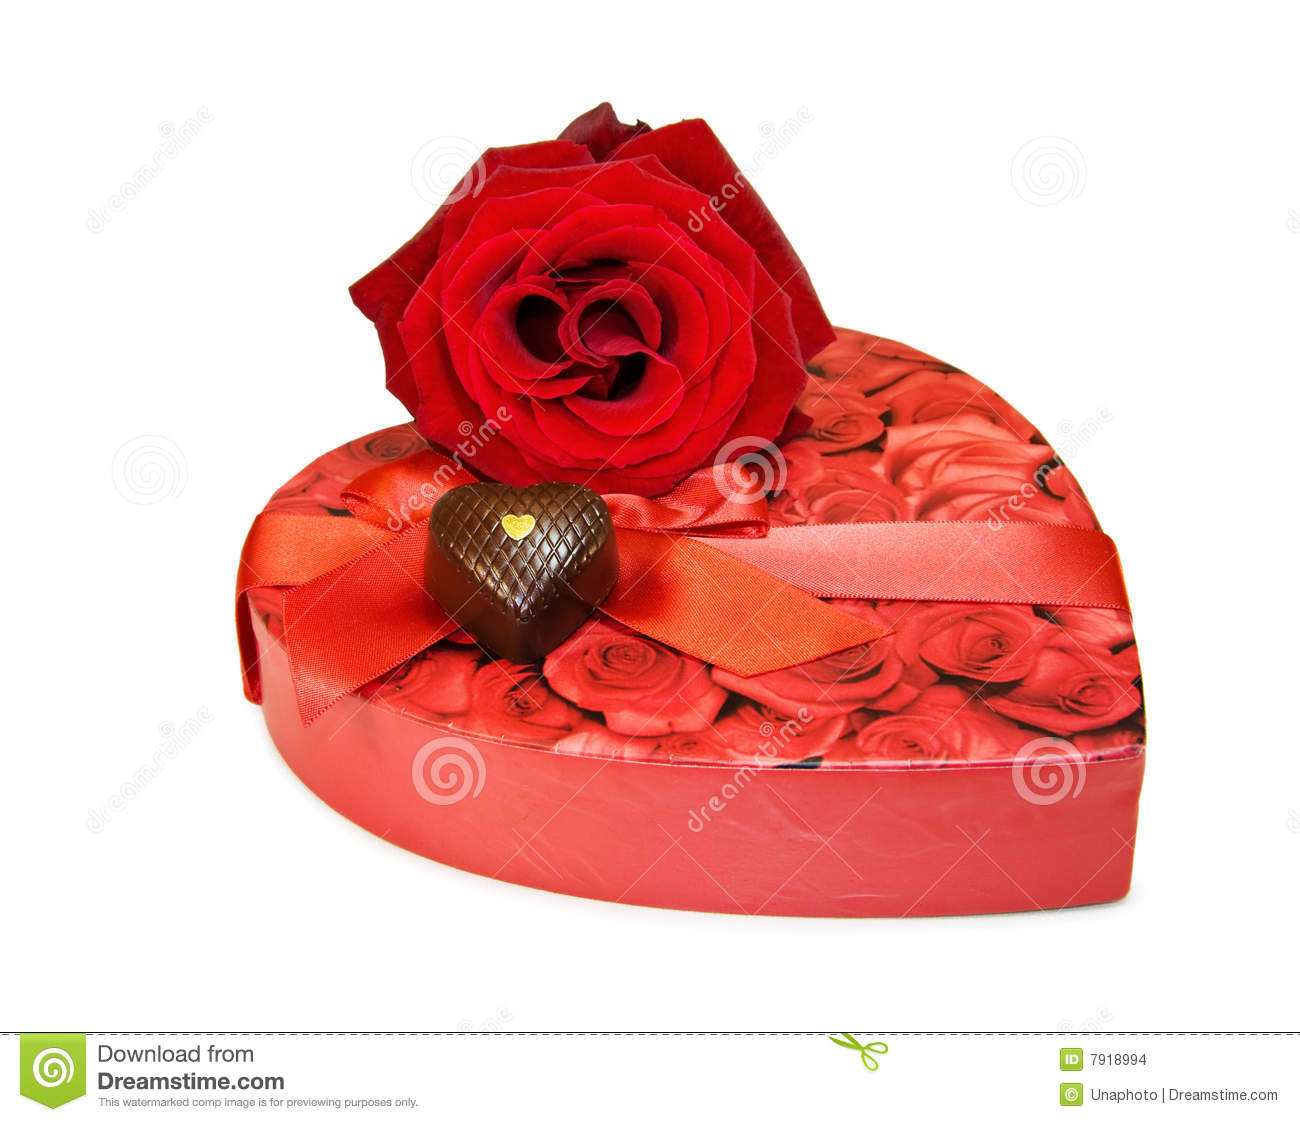 I Love You Red Heart Rose Stock Photos Royalty Free Pictures